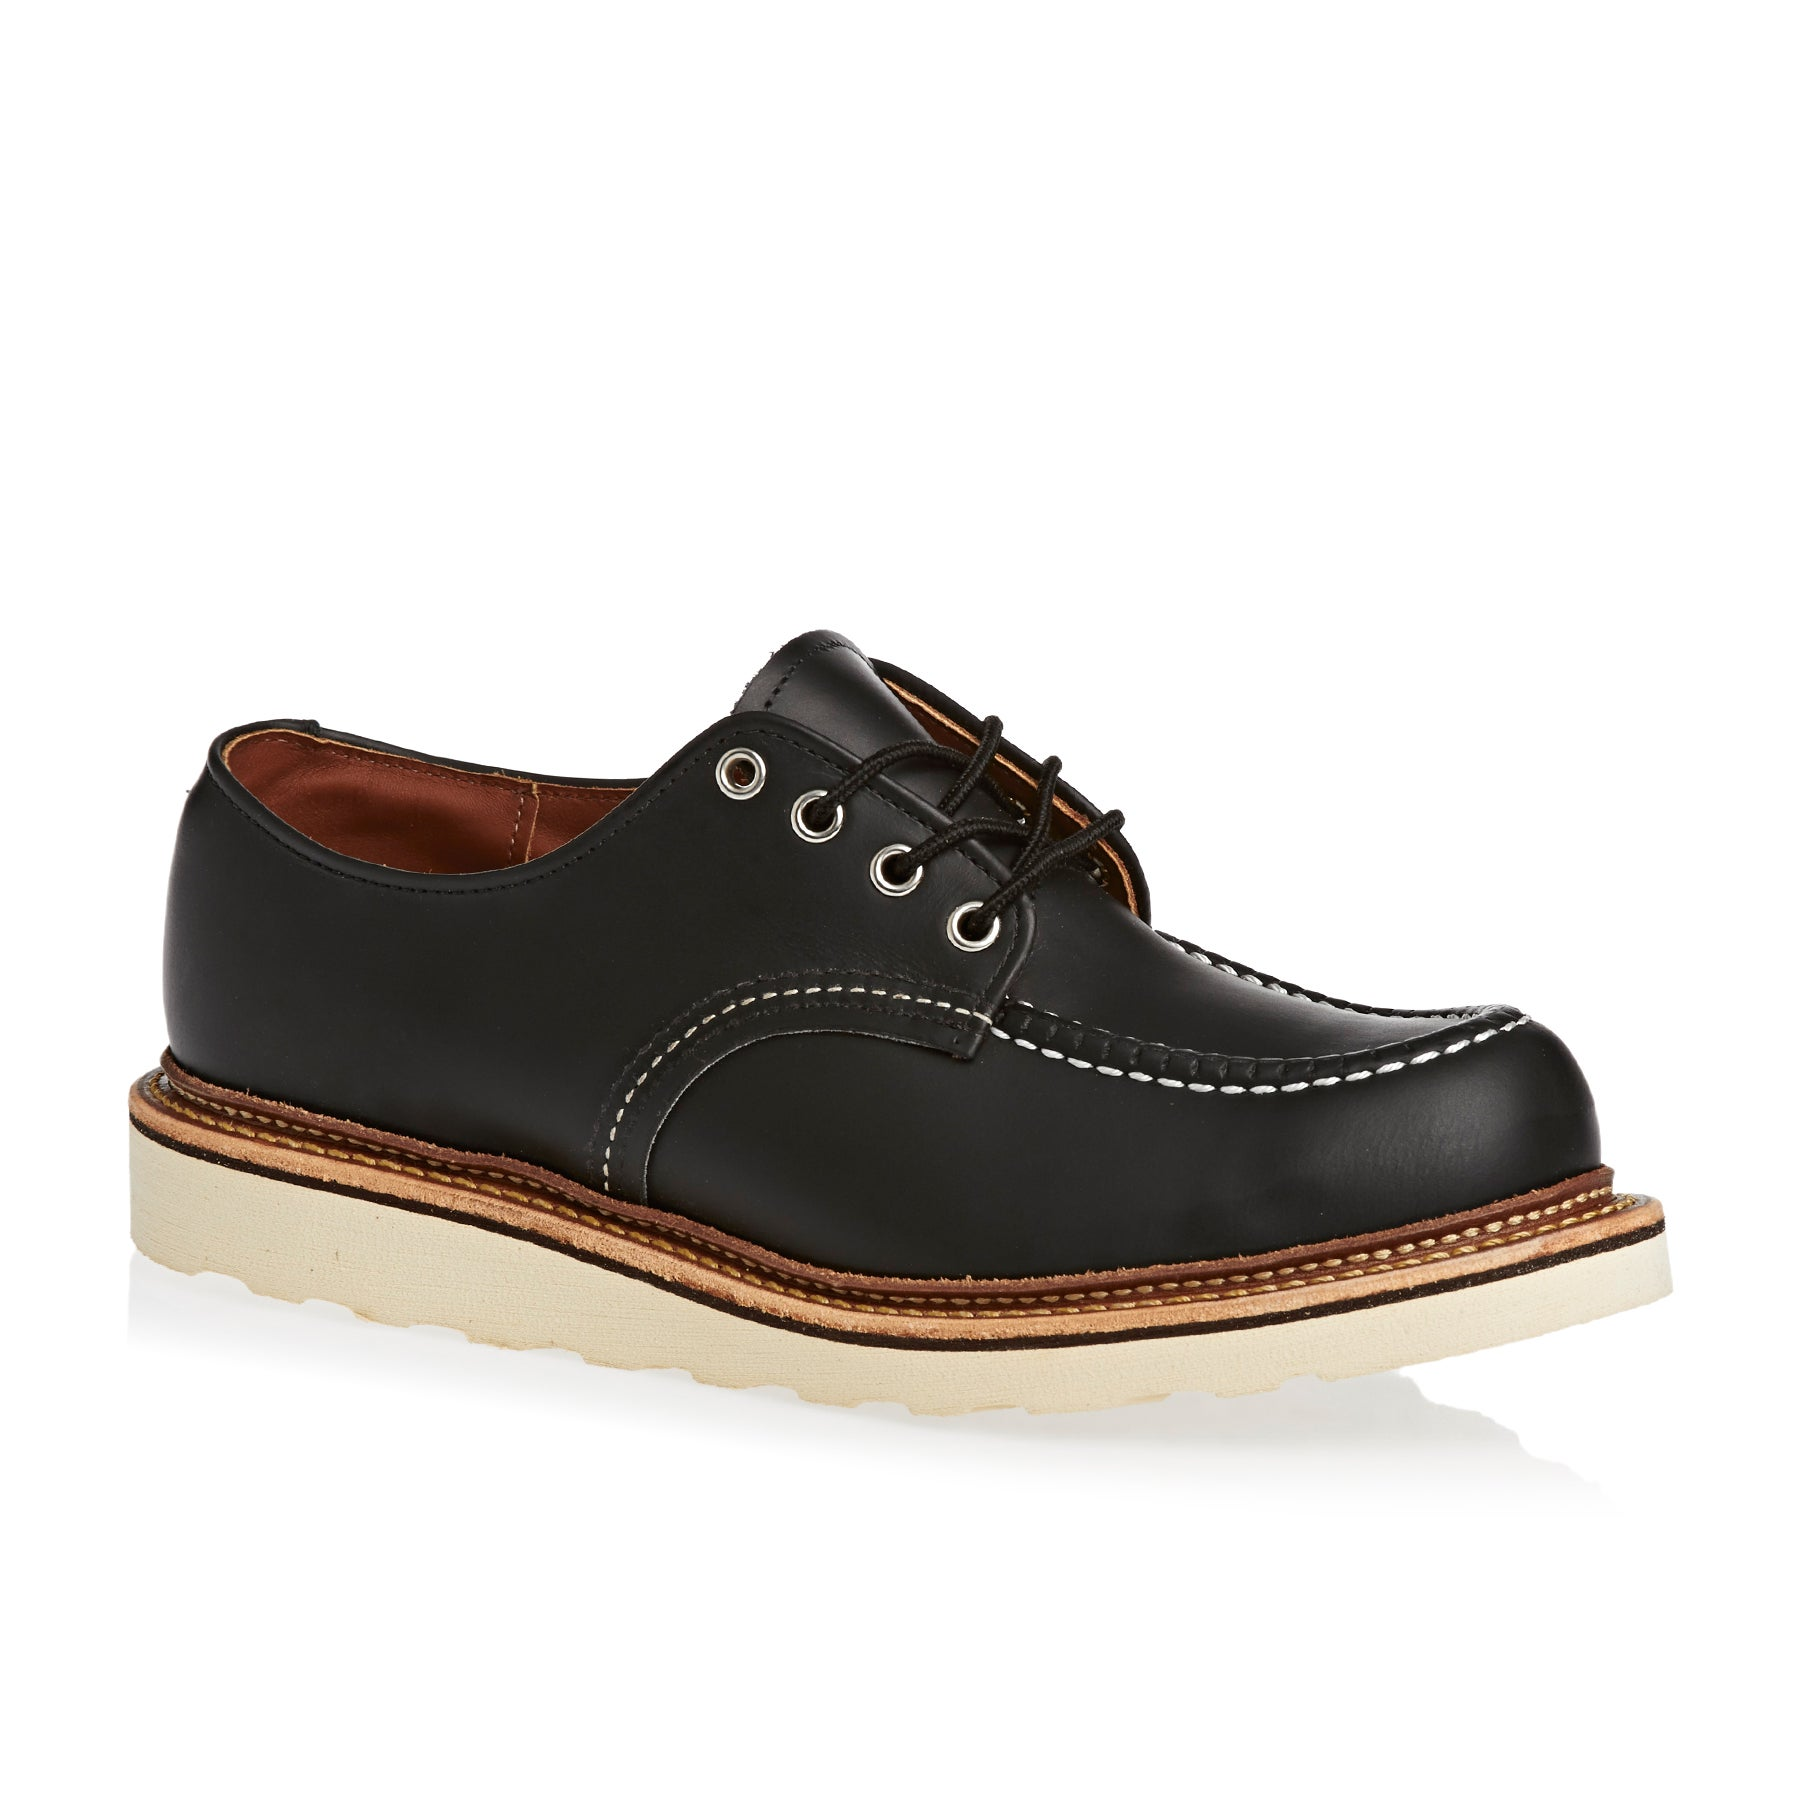 Red Wing Oxford Dress Shoes - Black Chrome